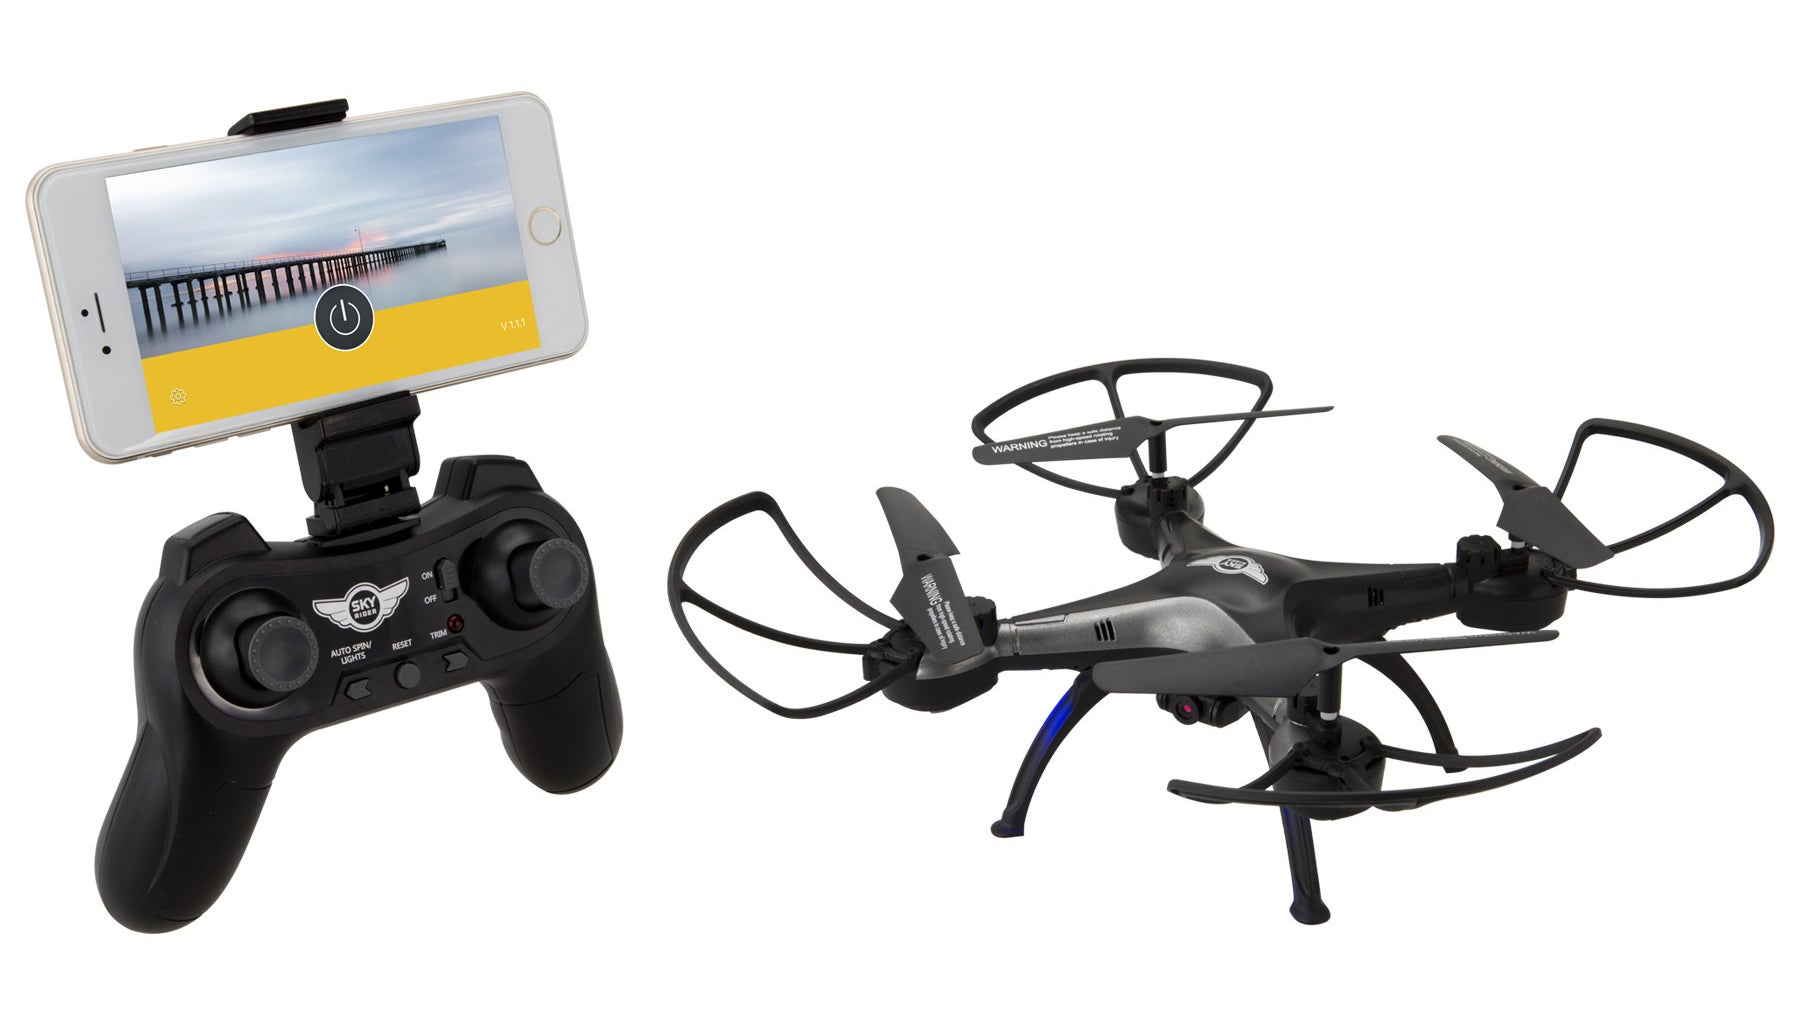 a controller and iphone on the left and the quadcoptor drone on the right